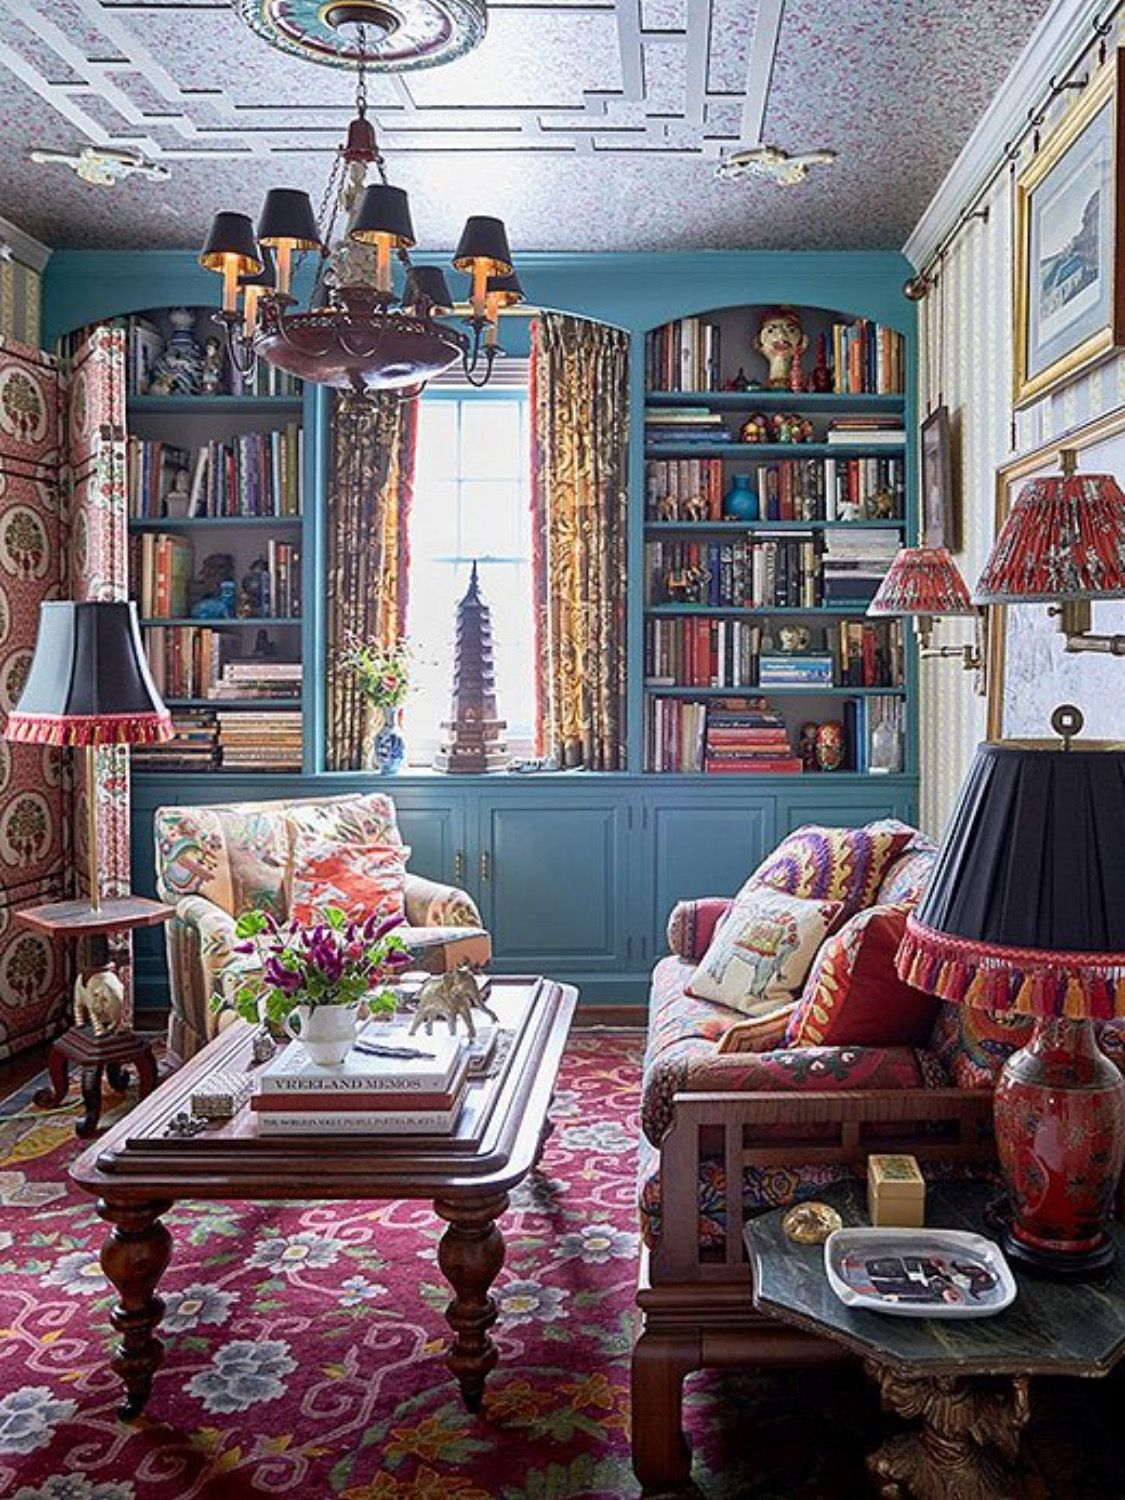 Cozy And Colorful Small Space Bohemian Style Interior Design